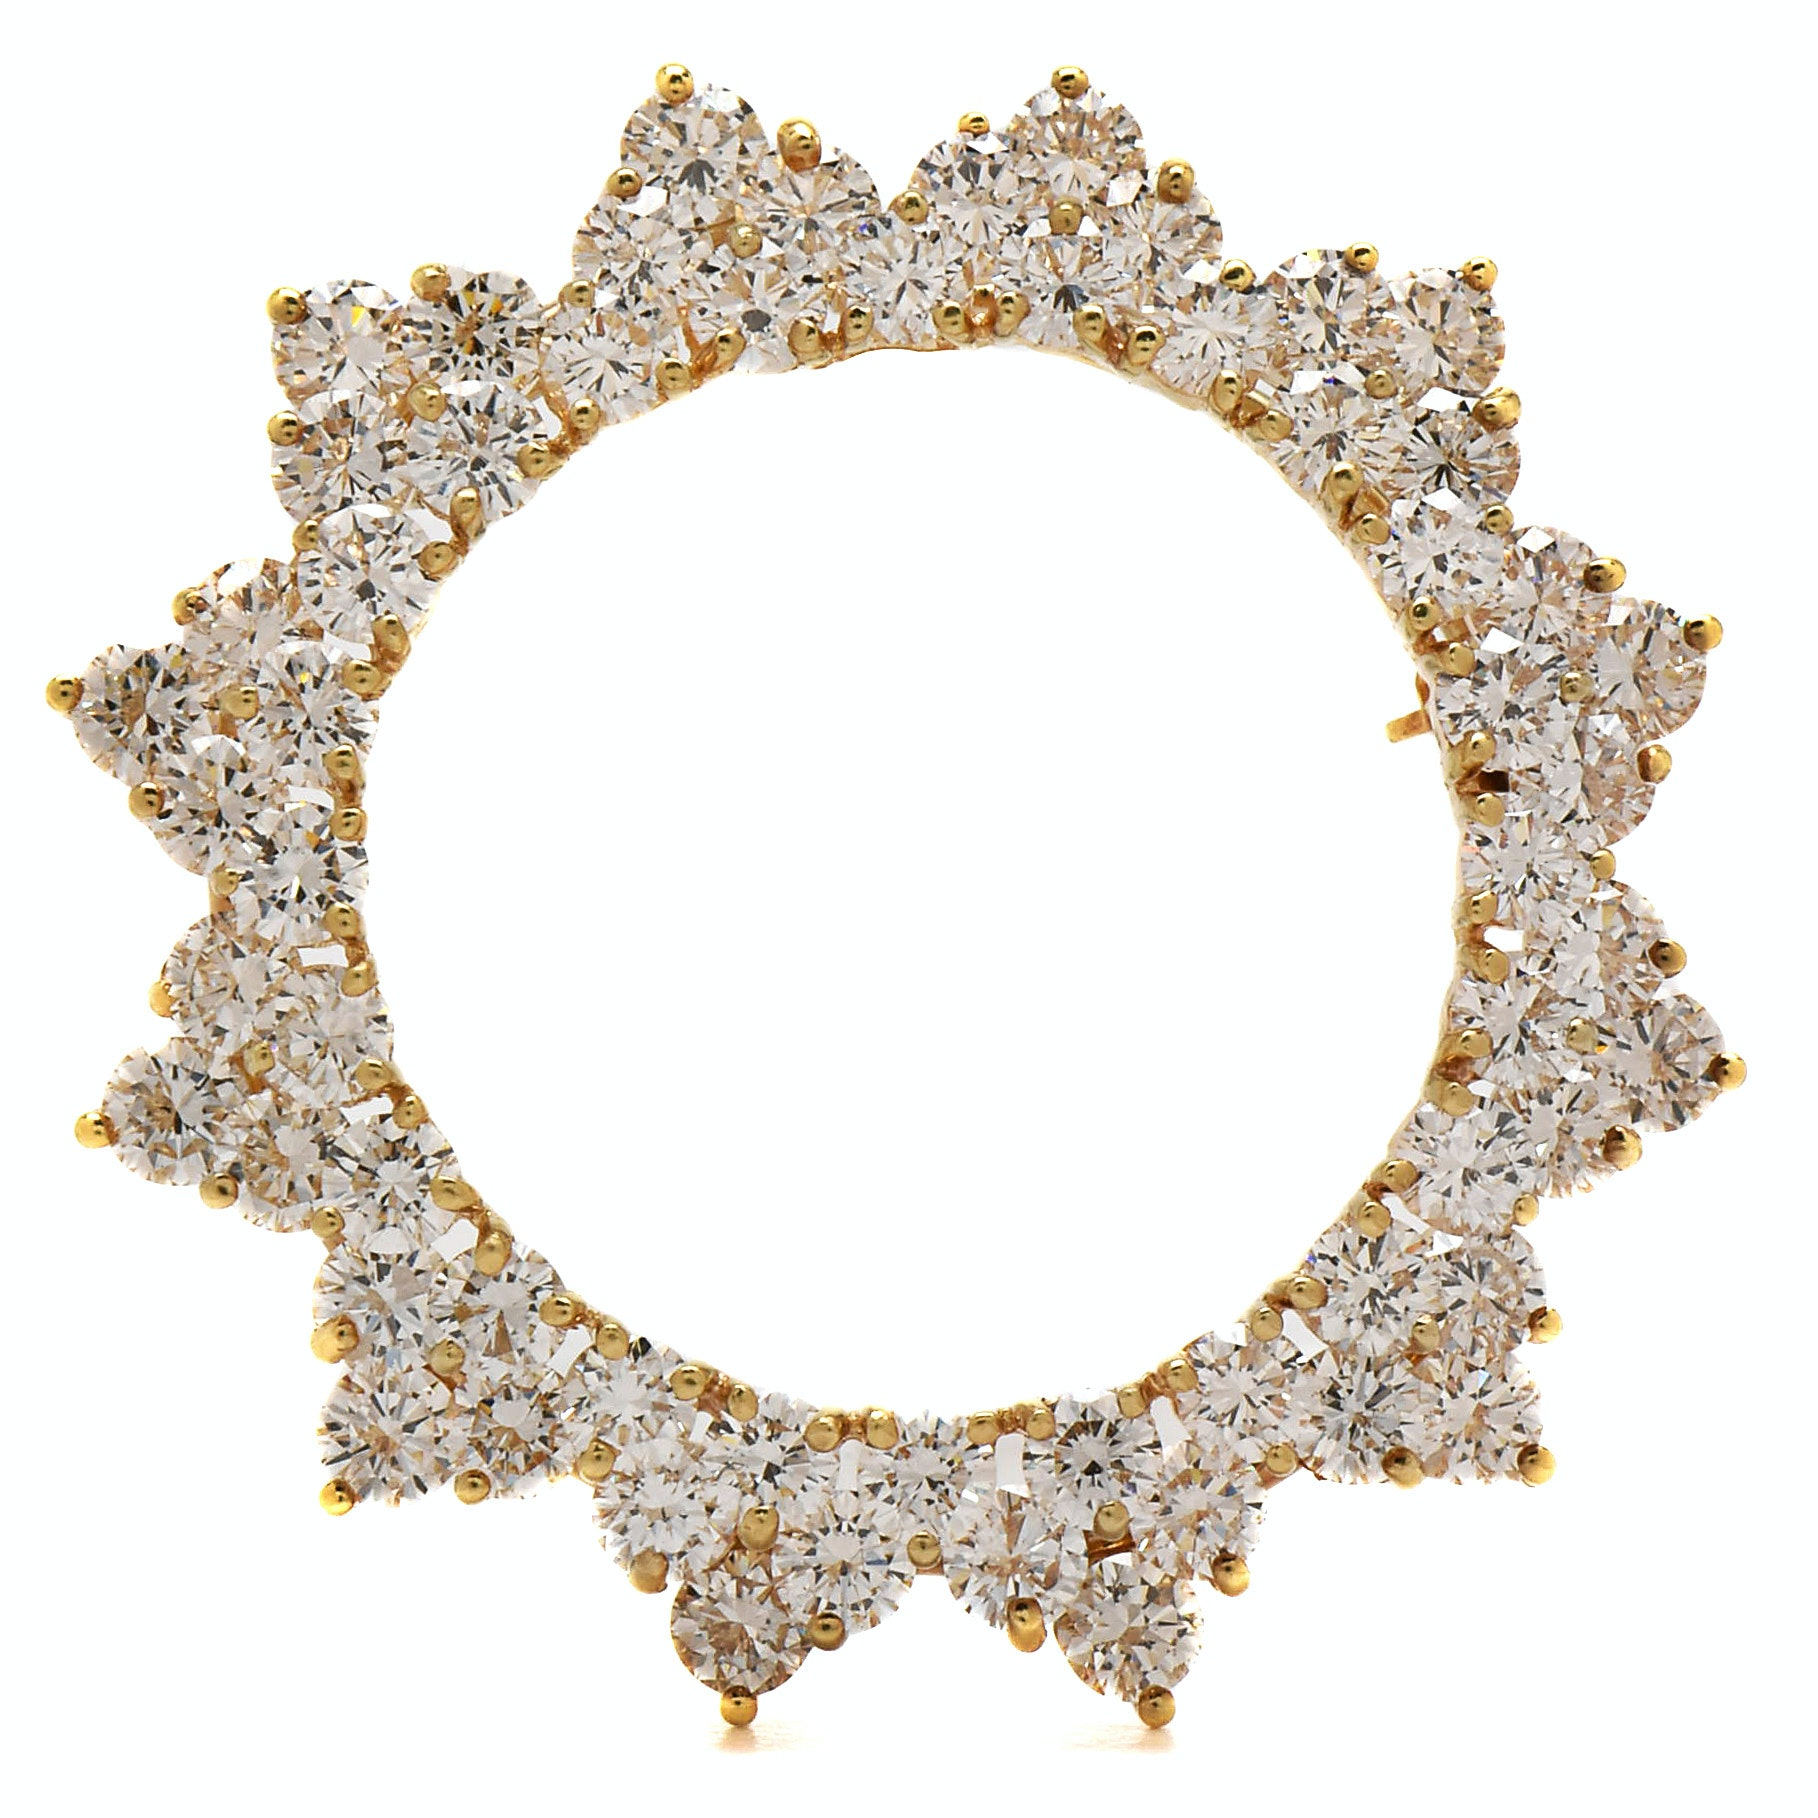 14K and 18K Yellow Gold 4.68 CTW Diamond Wreath Converter Brooch